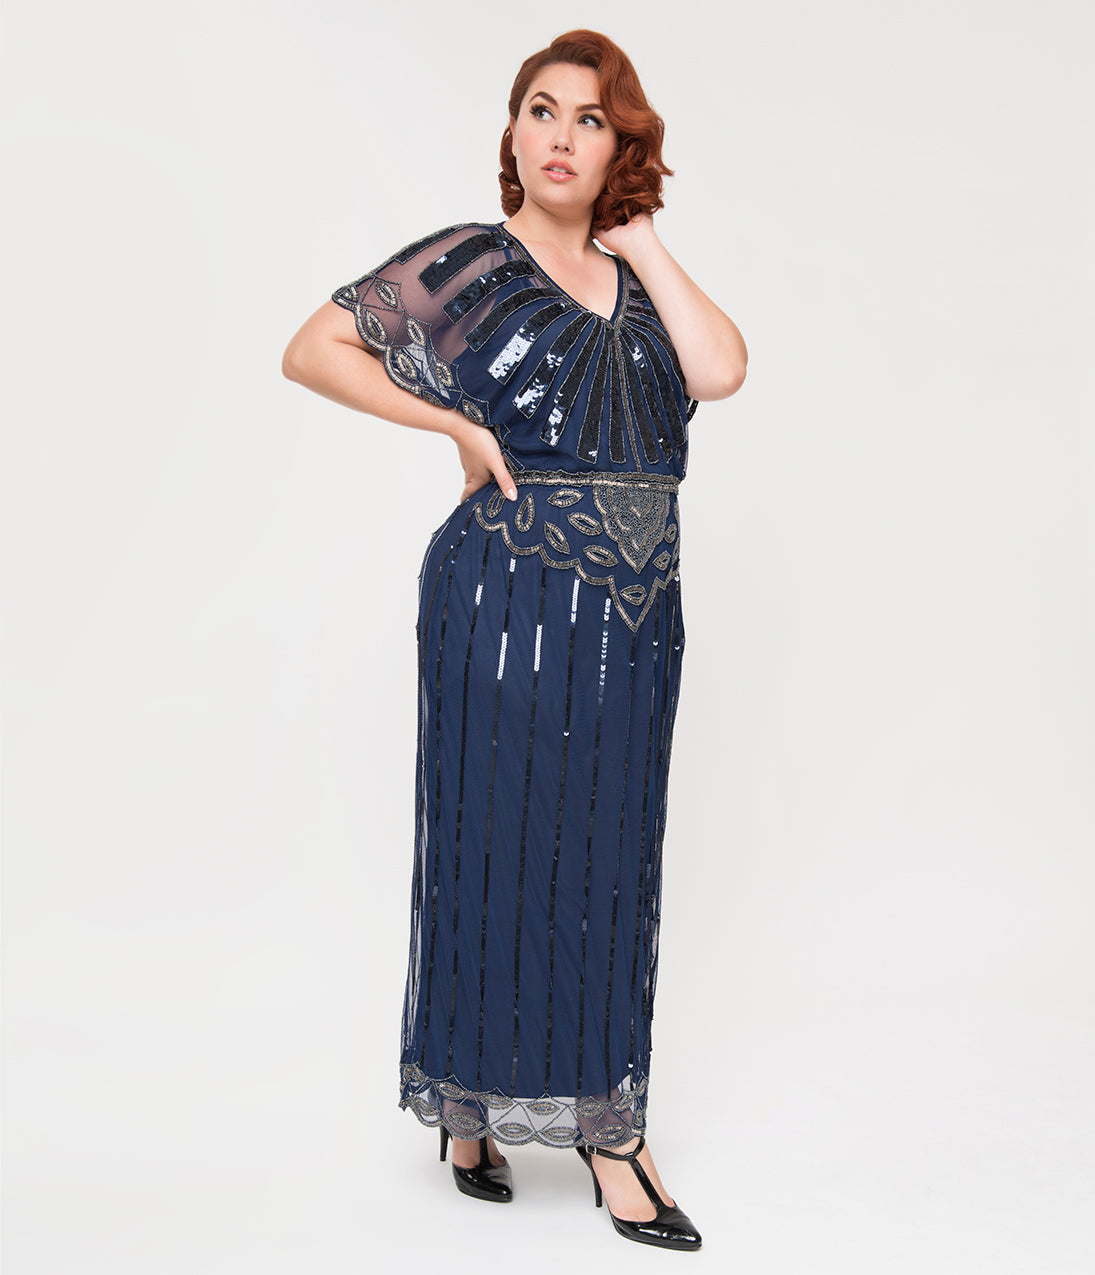 1930s Evening Dresses | Old Hollywood Dress Plus Size 1920S Navy Blue Beaded Deco Angelina Maxi Flapper Dress $168.00 AT vintagedancer.com